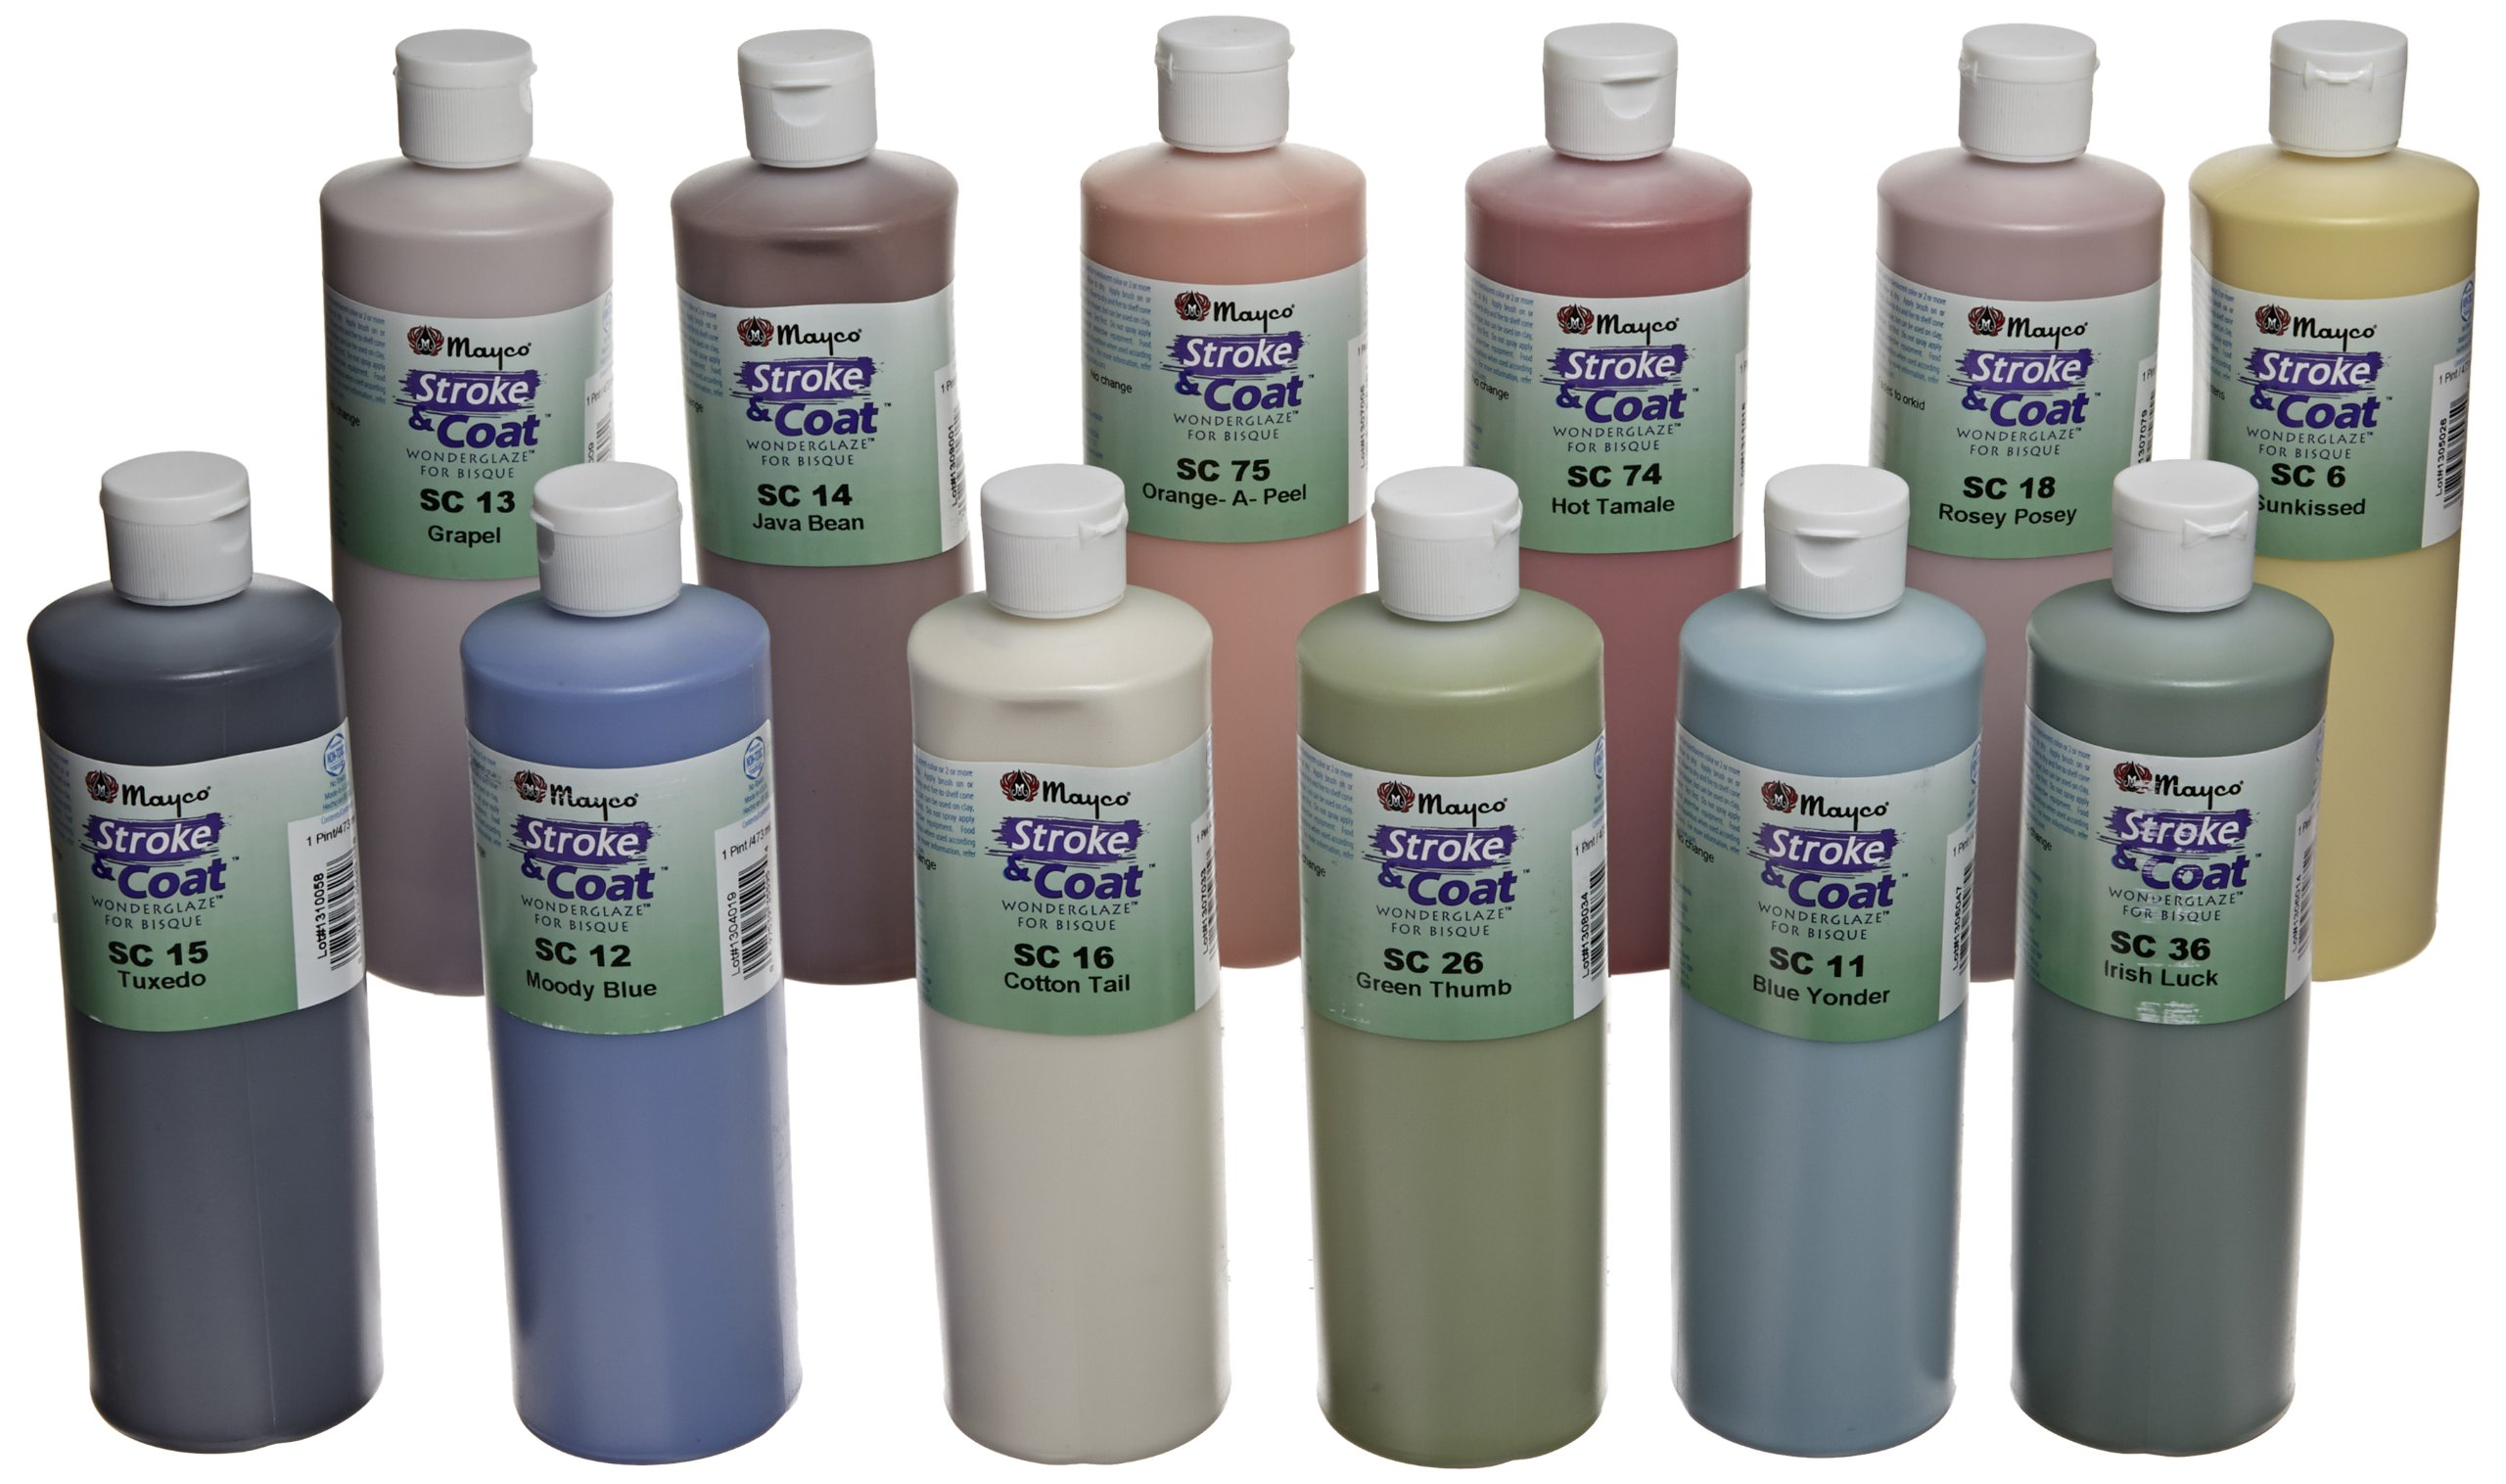 Mayco Stroke and Coat Wonderglaze for Bisque Set A - 1 Pint - Set of 12 - Assorted Colors